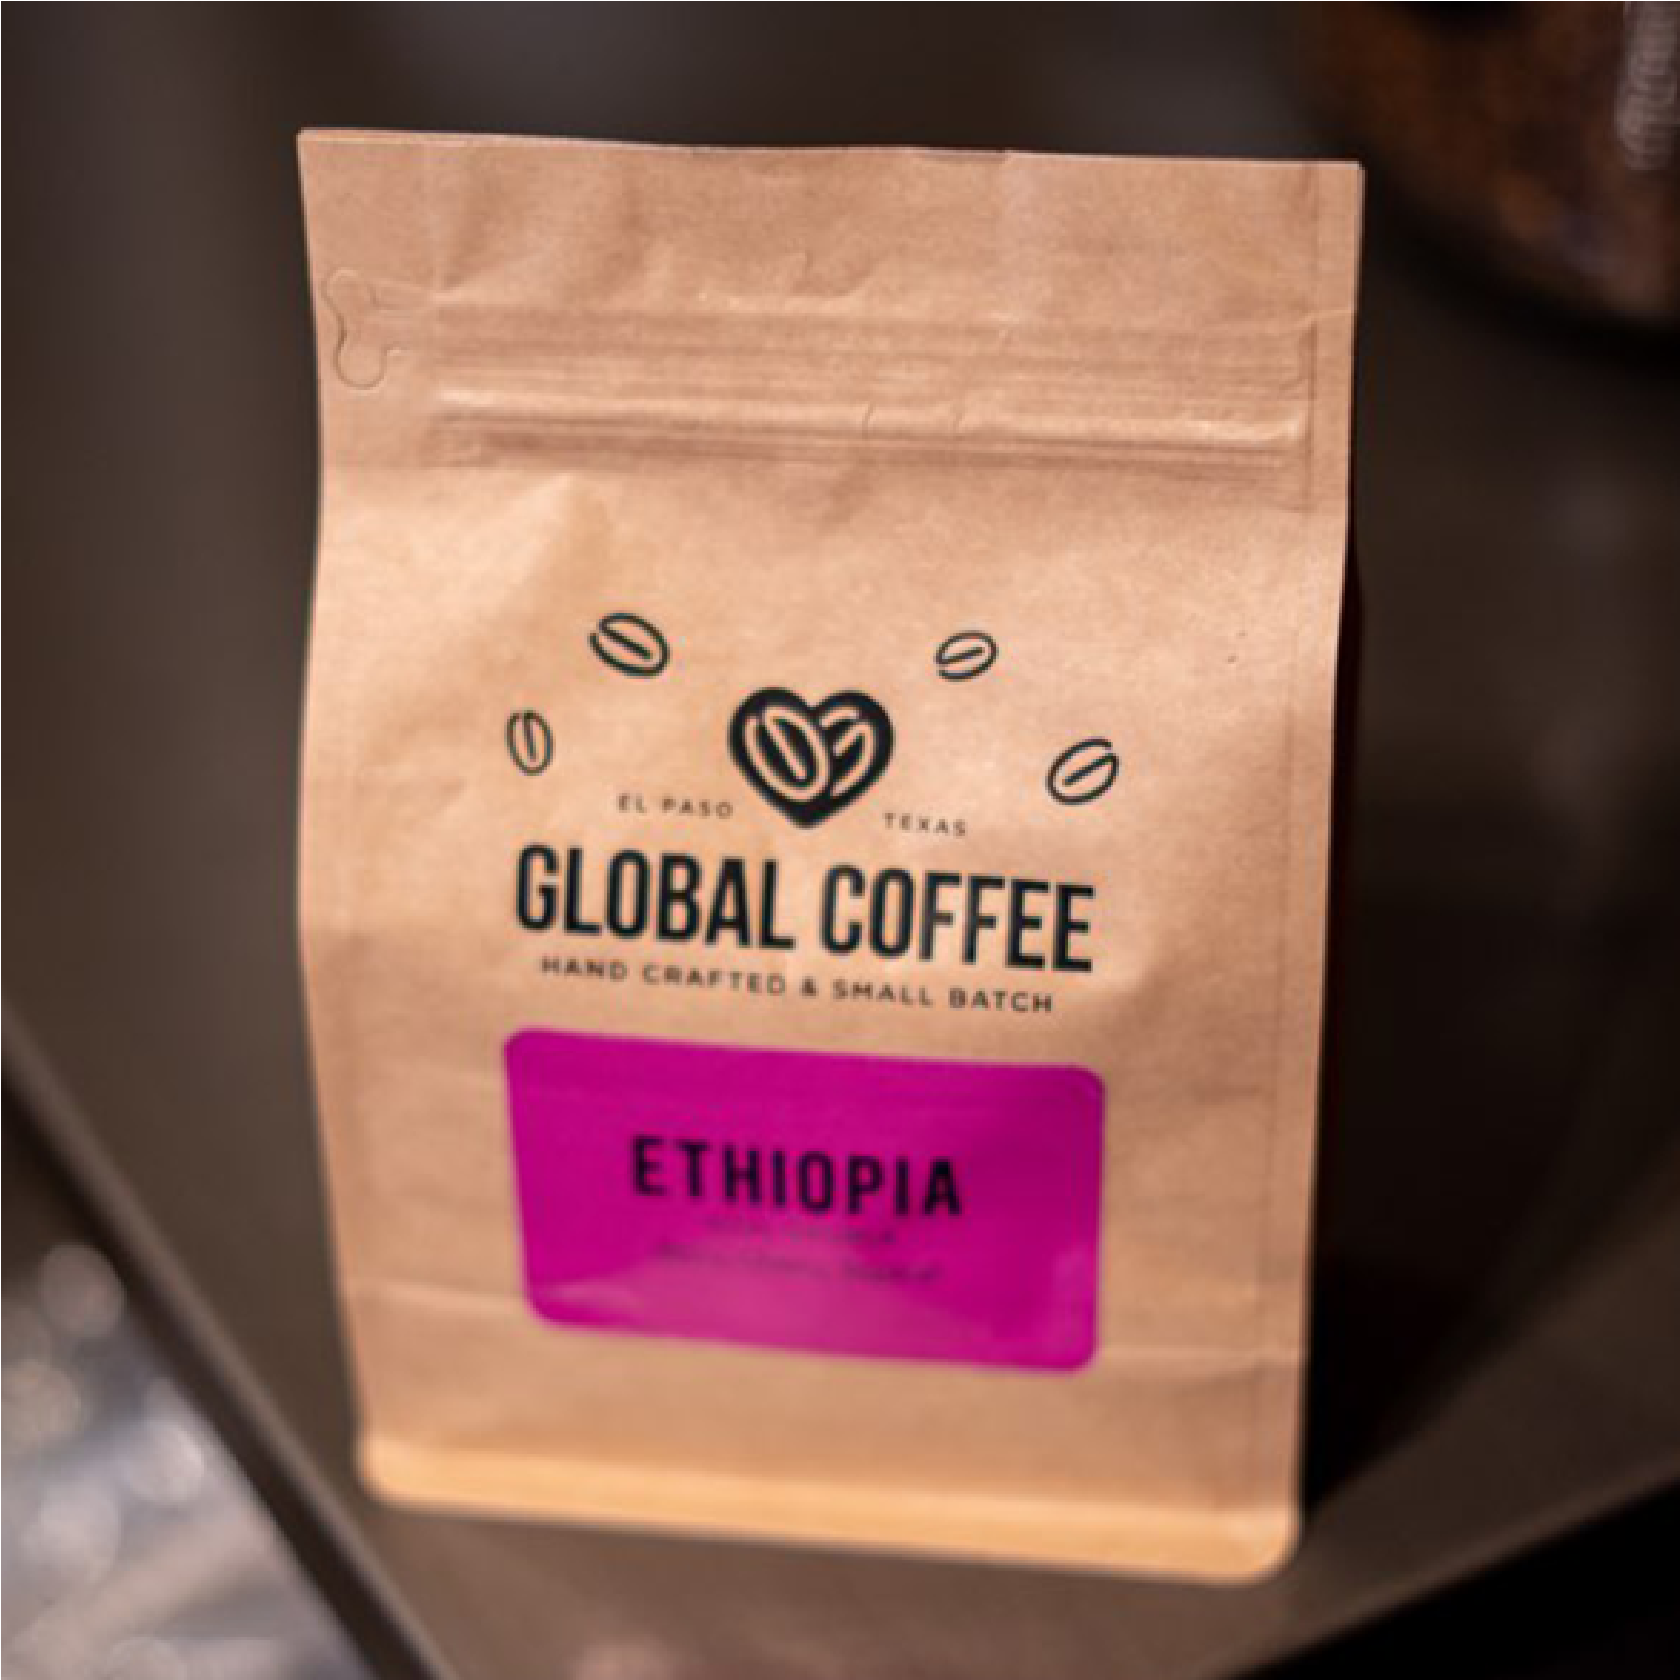 Ethiopia from Global Coffee